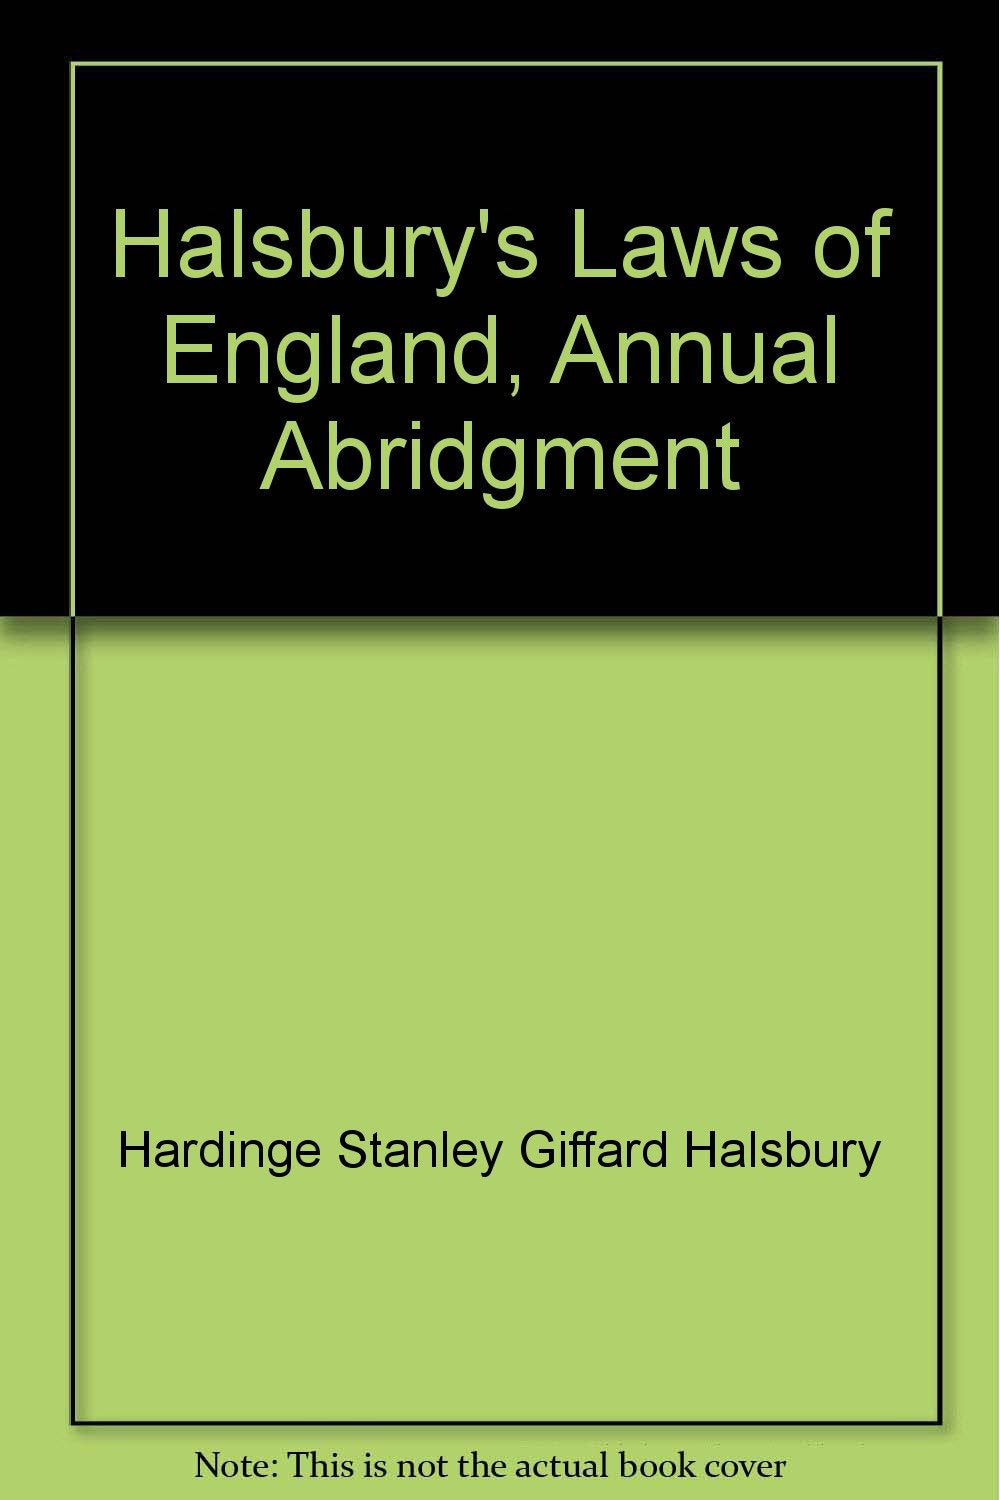 Halsbury's Laws of England, Annual Abridgment